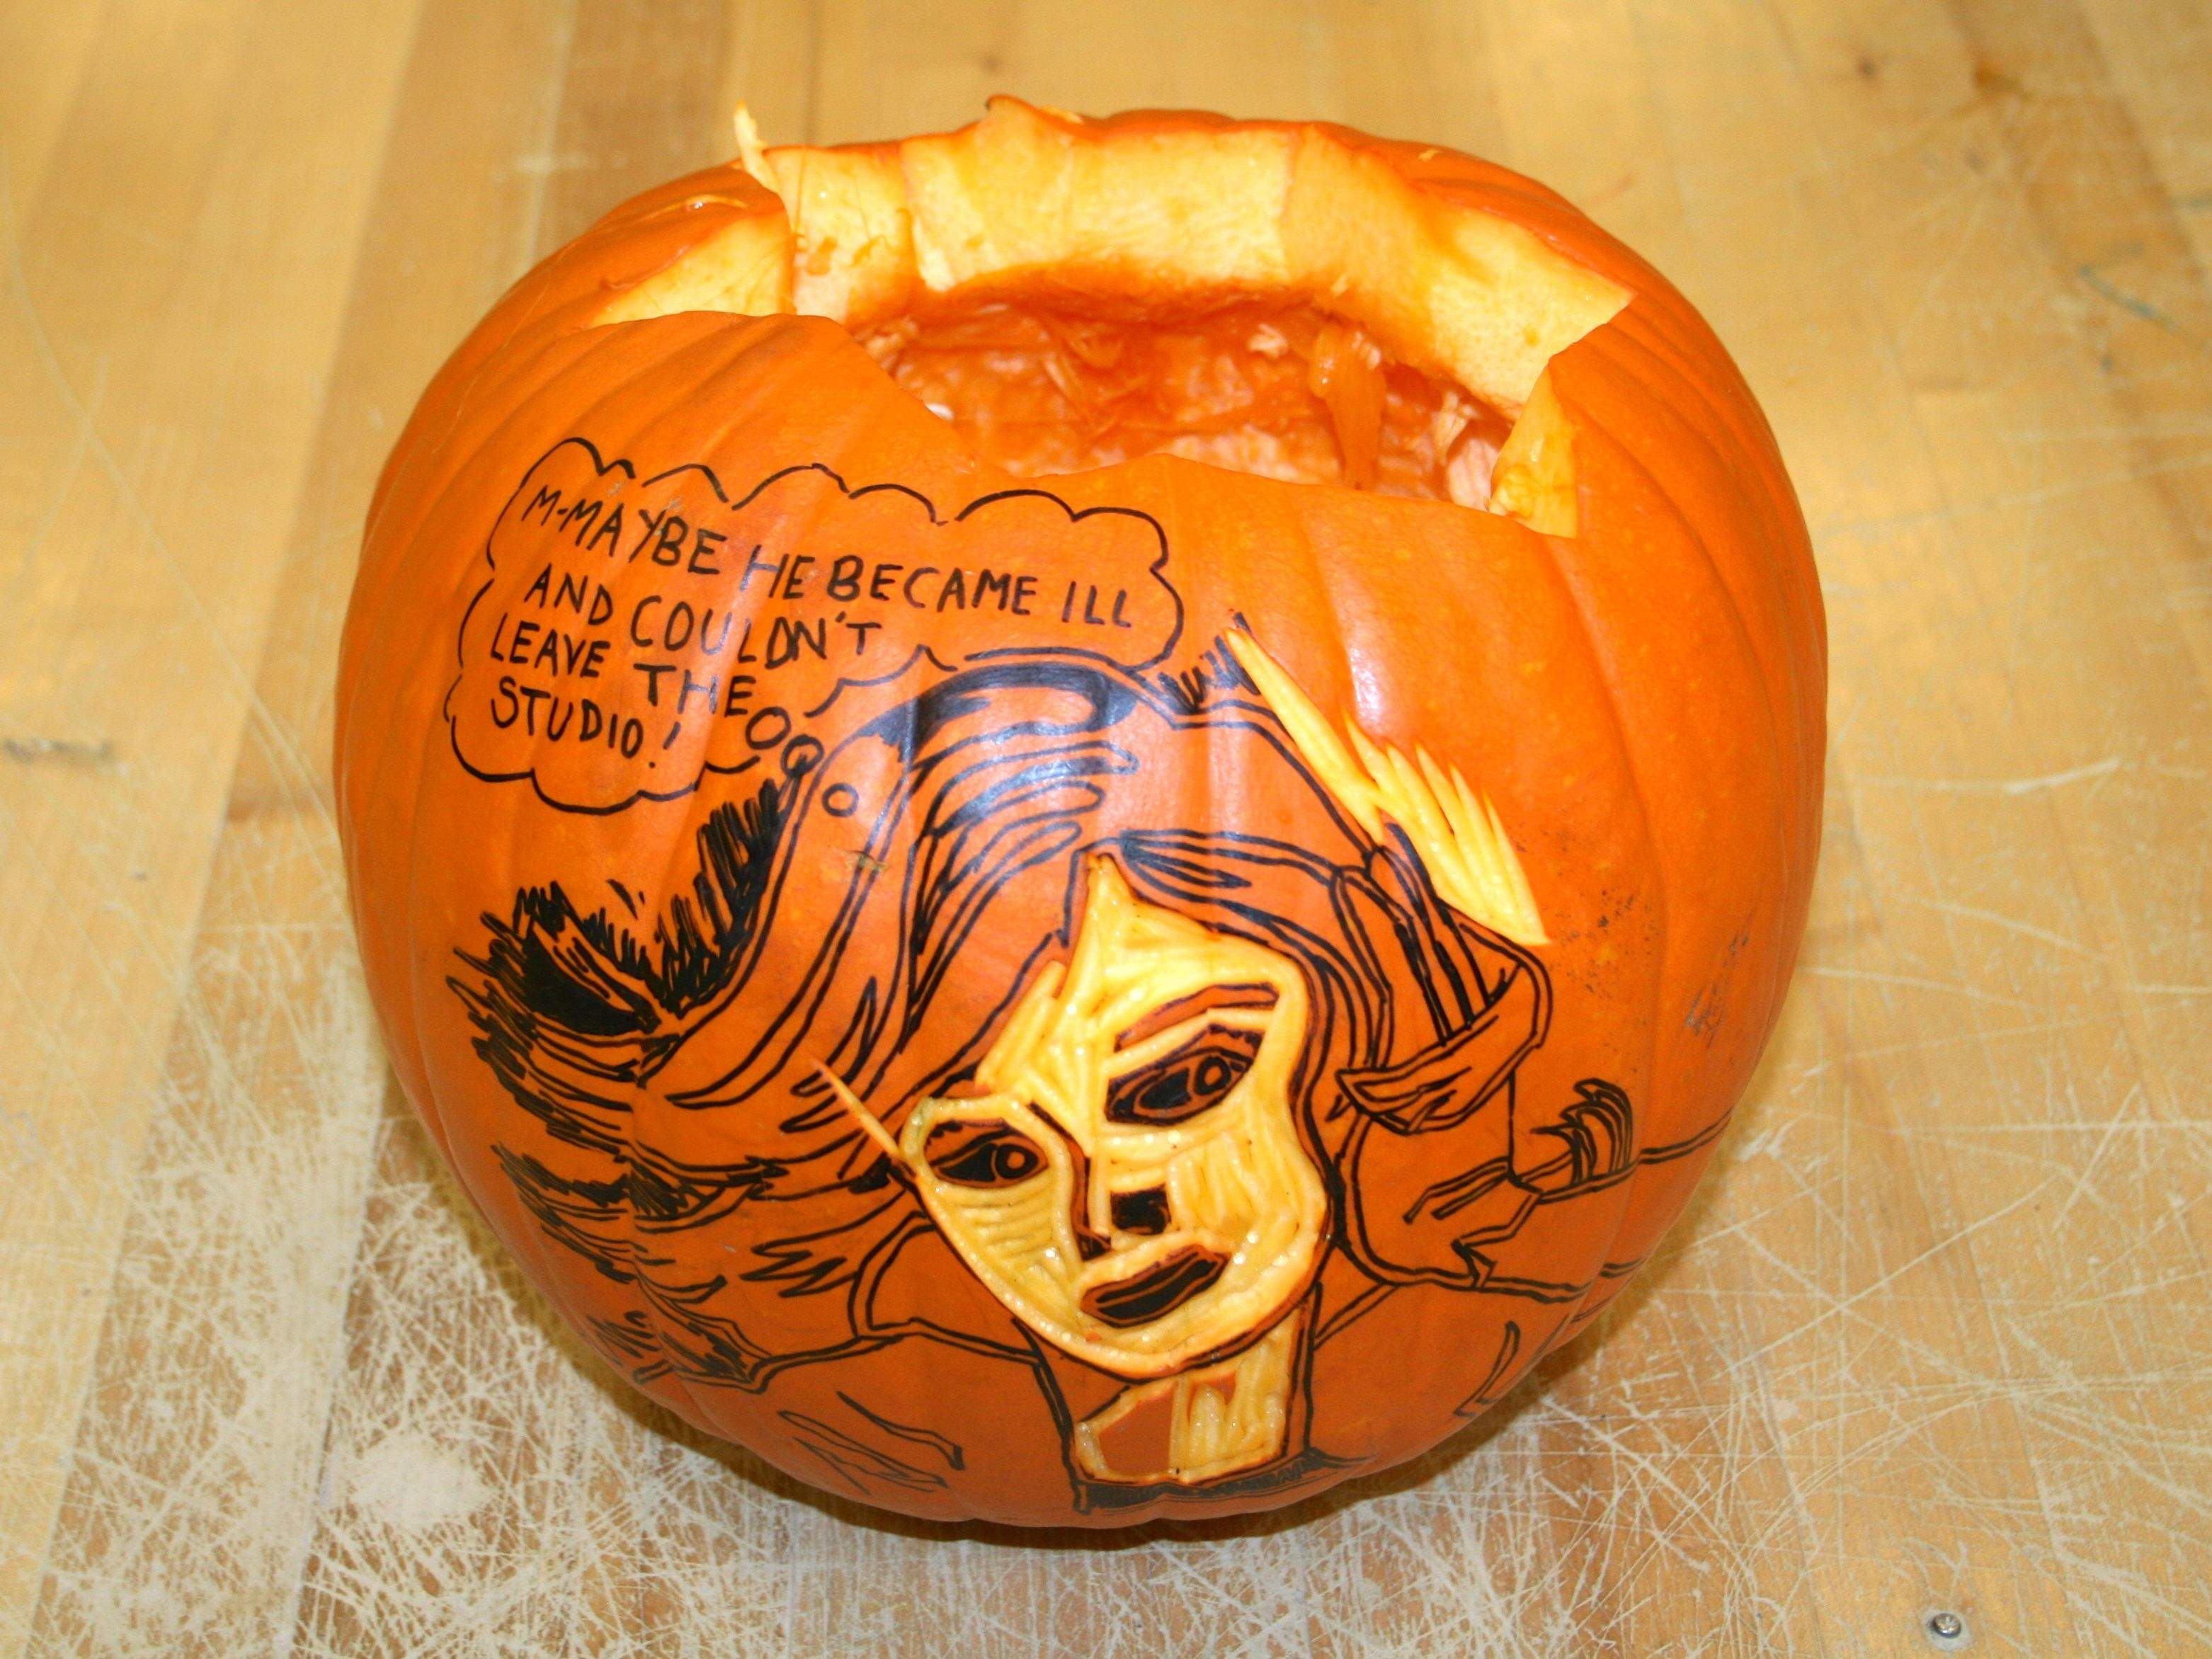 Craft project artistic pumpkin carving look between the